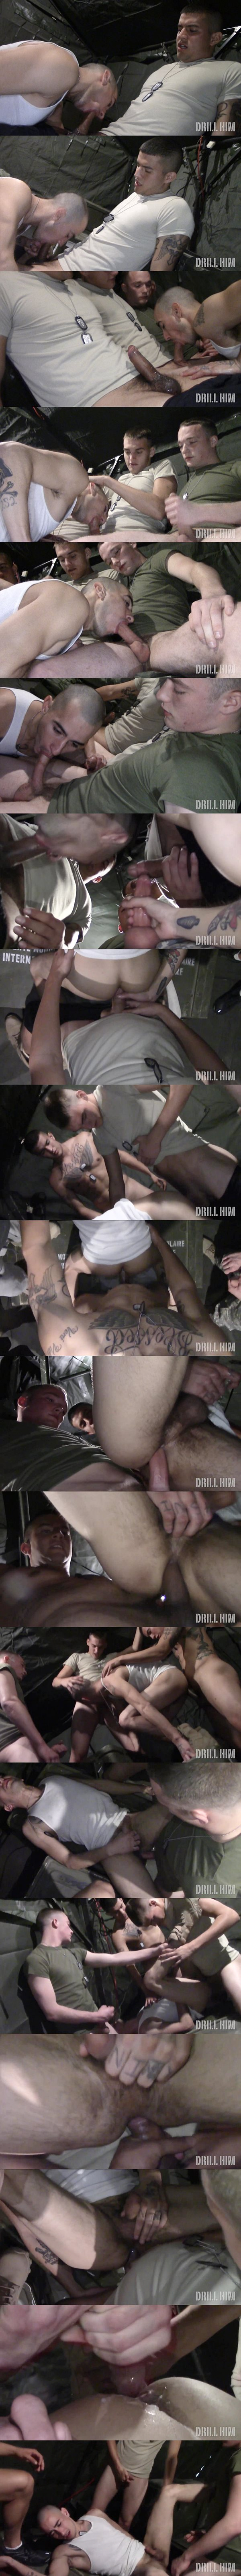 Joey Rico, TJ Weidman and Broc gangbang James Dickson in Dumpster On Base at Drillhim 02